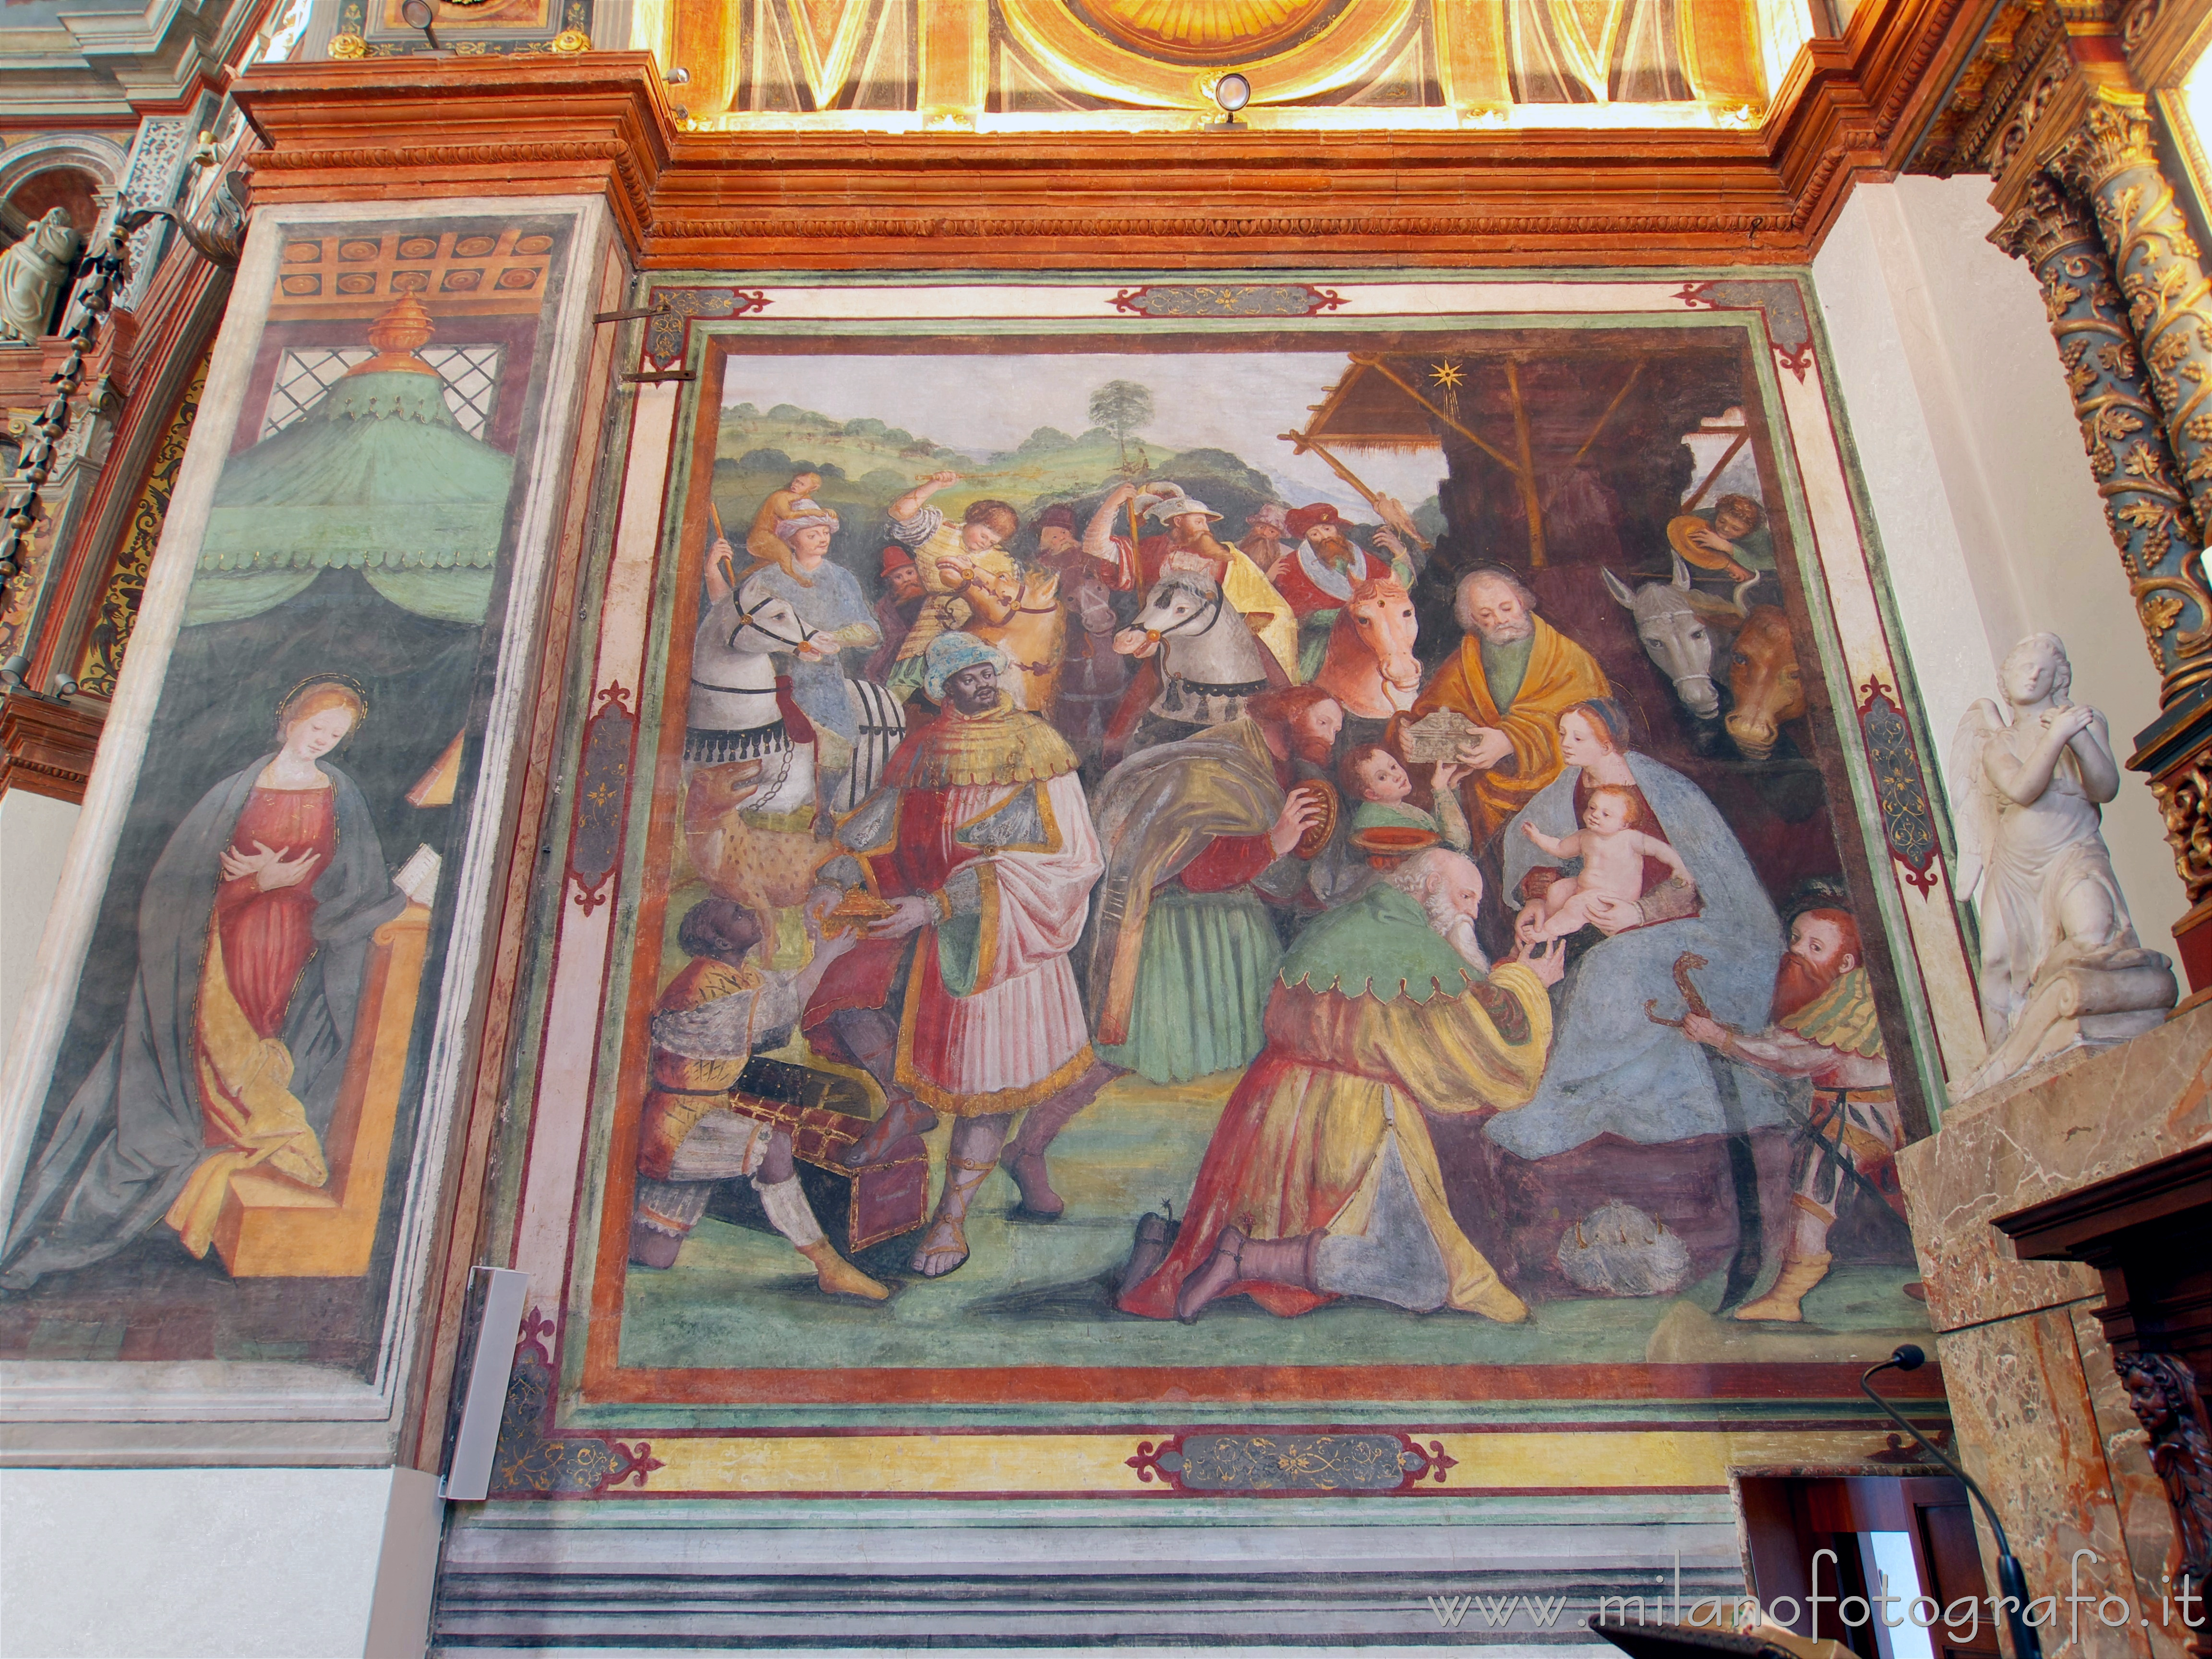 Busto Arsizio (Varese, Italy): Adoration of the Magi in the Sanctuary of Santa Maria di Piazza - Busto Arsizio (Varese, Italy)